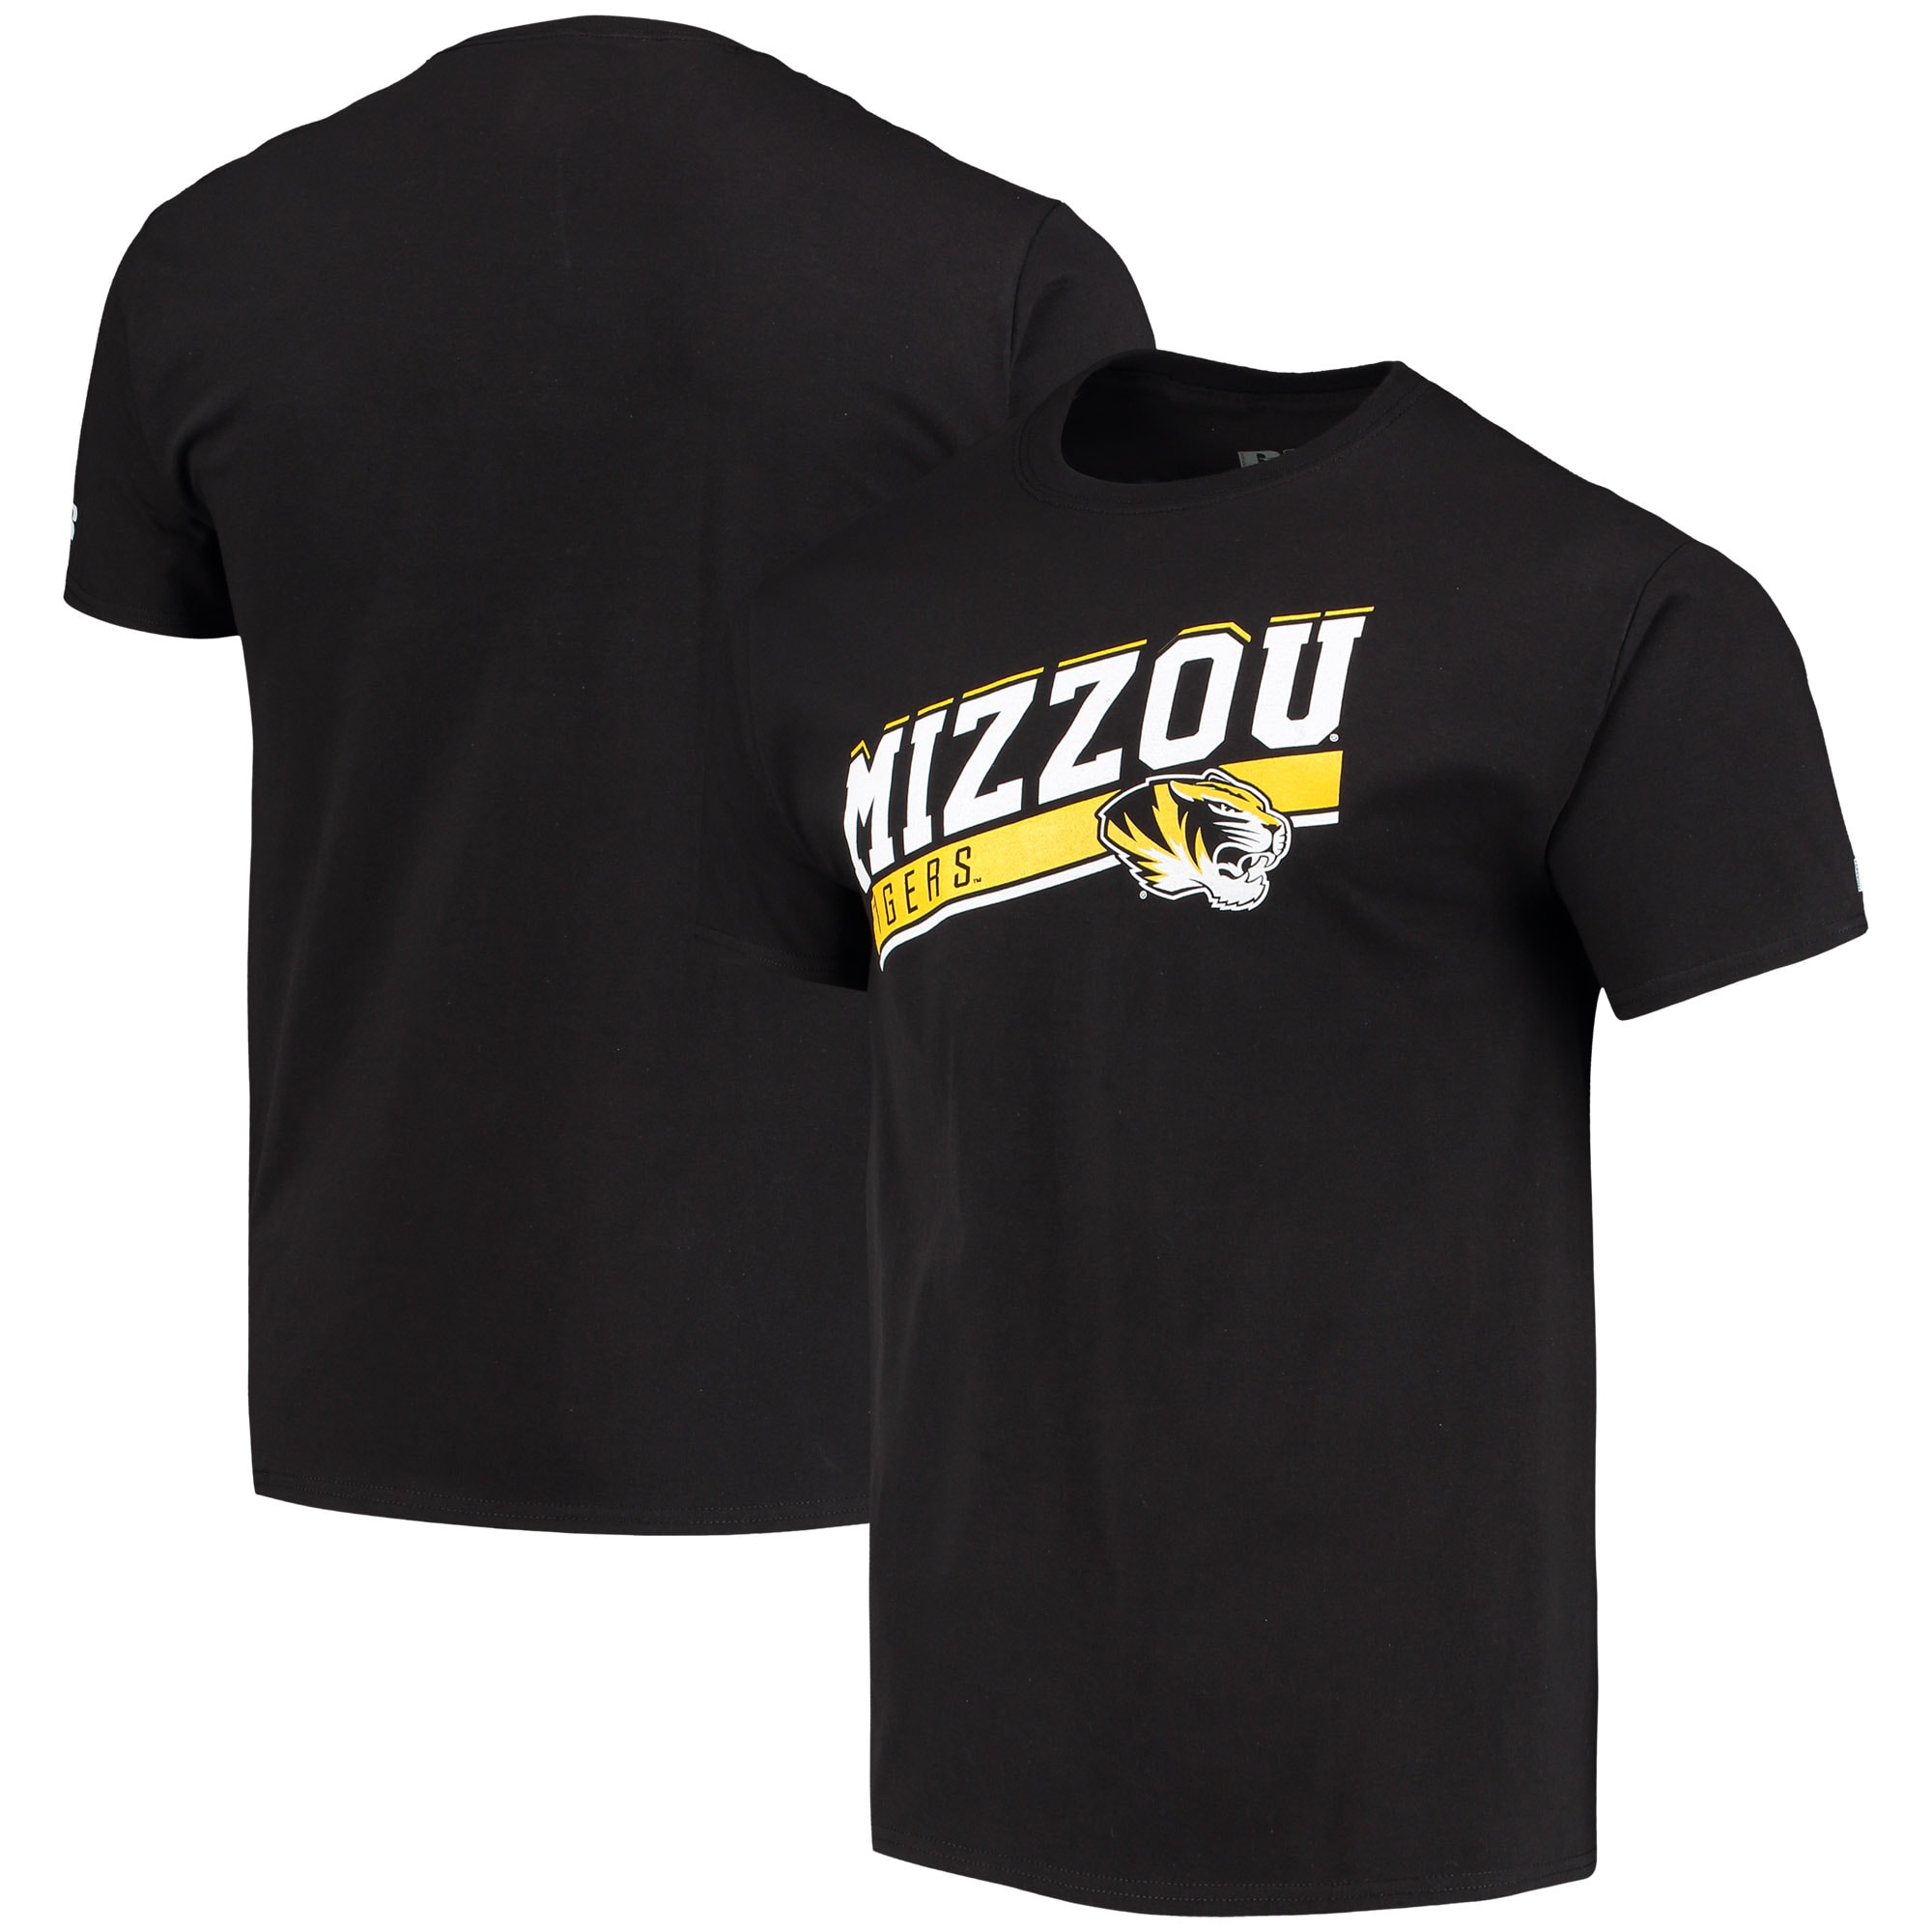 NCAA Missouri Tigers T-Shirt V3